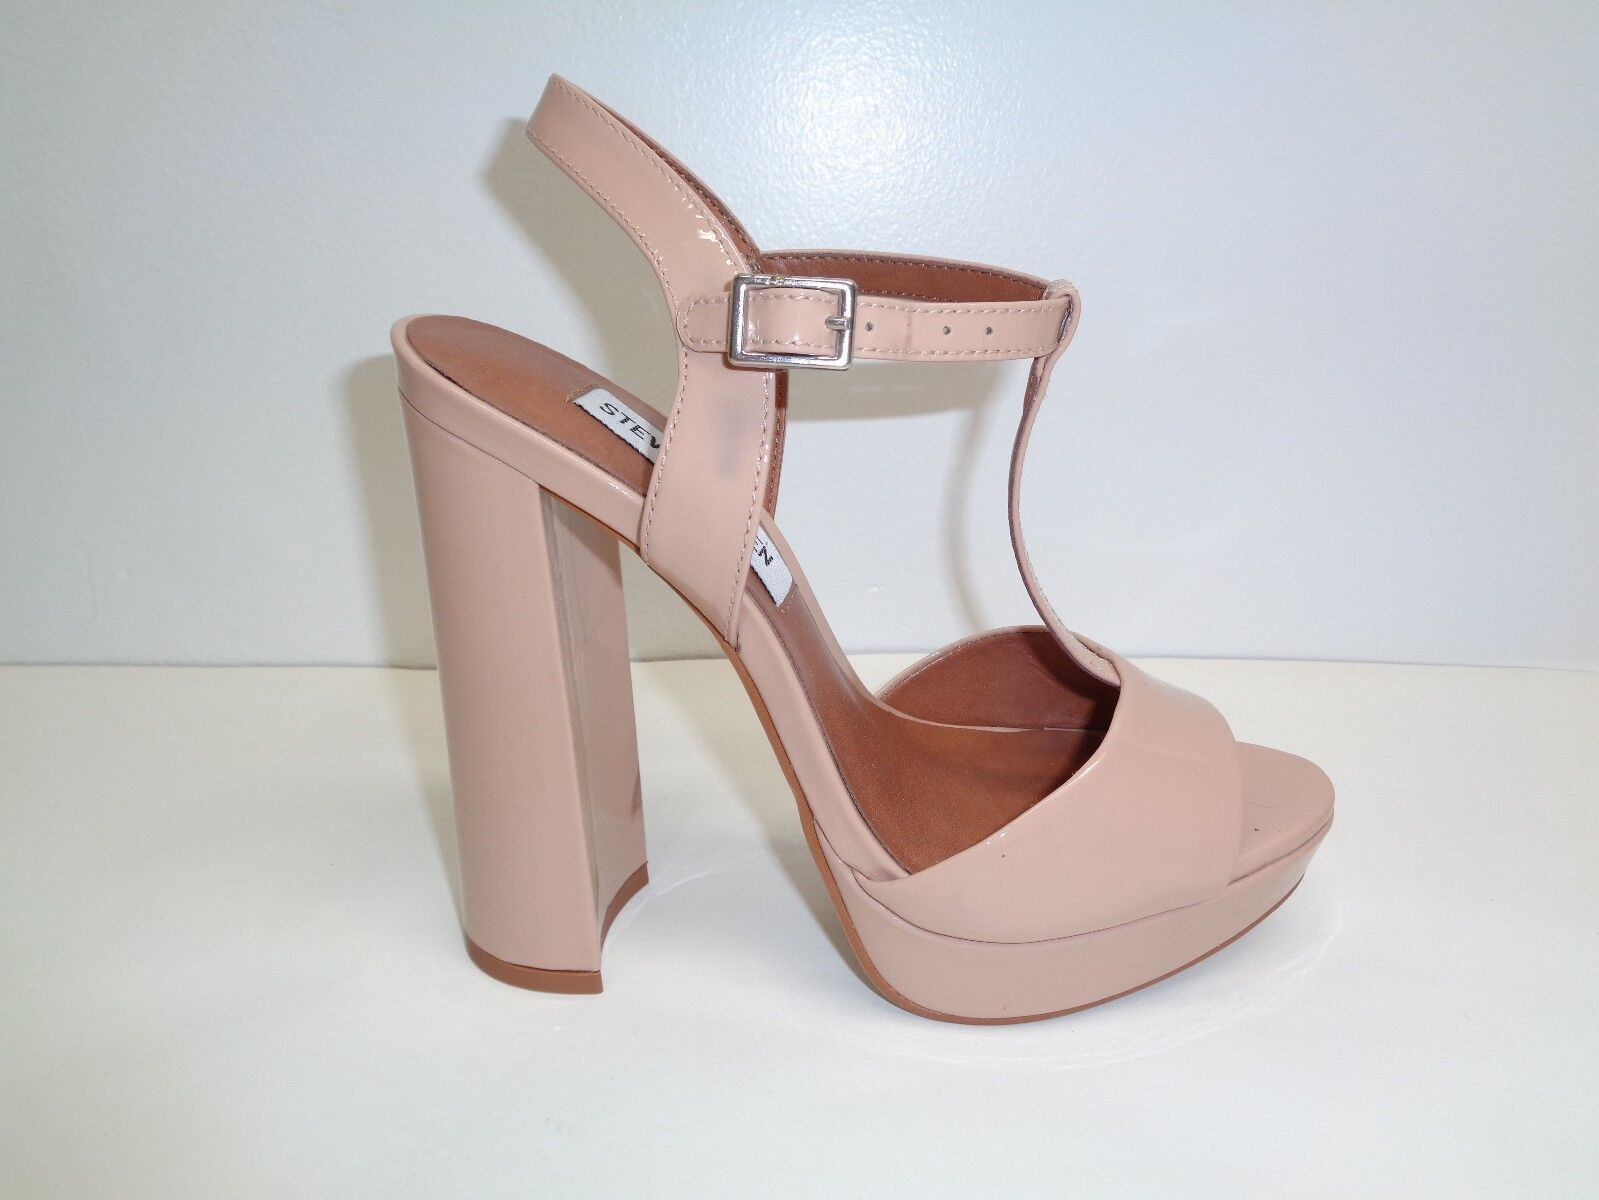 Steve Madden Taille 5.5 M KINDER Beige Patent Leather Sandals New femmes chaussures